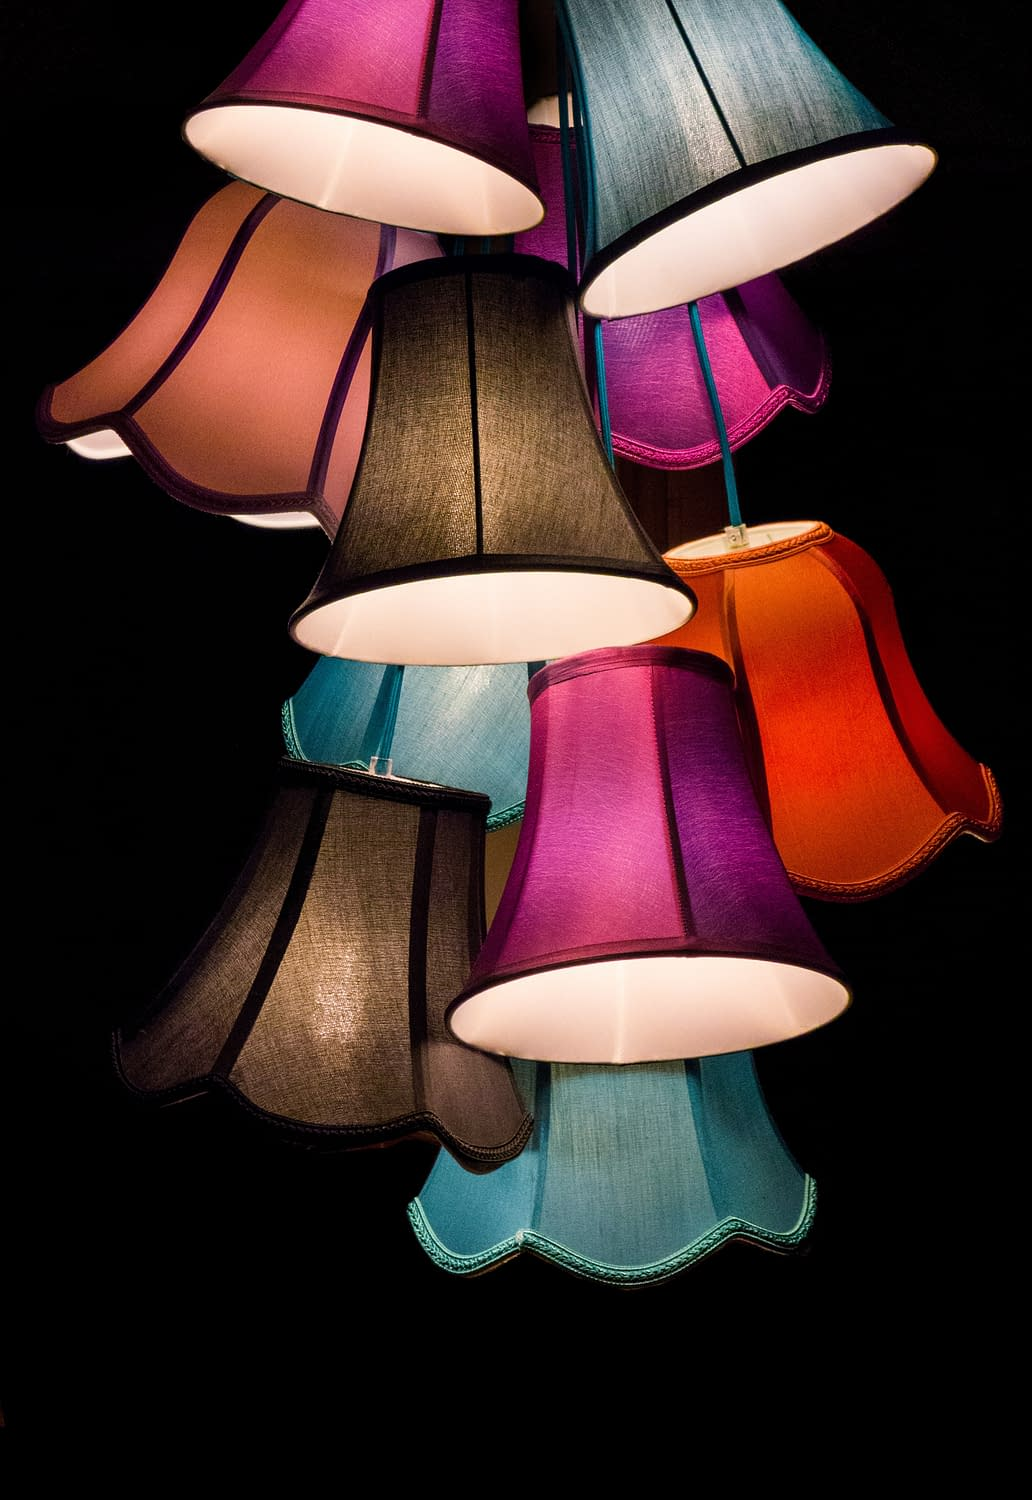 many lamps in different colors